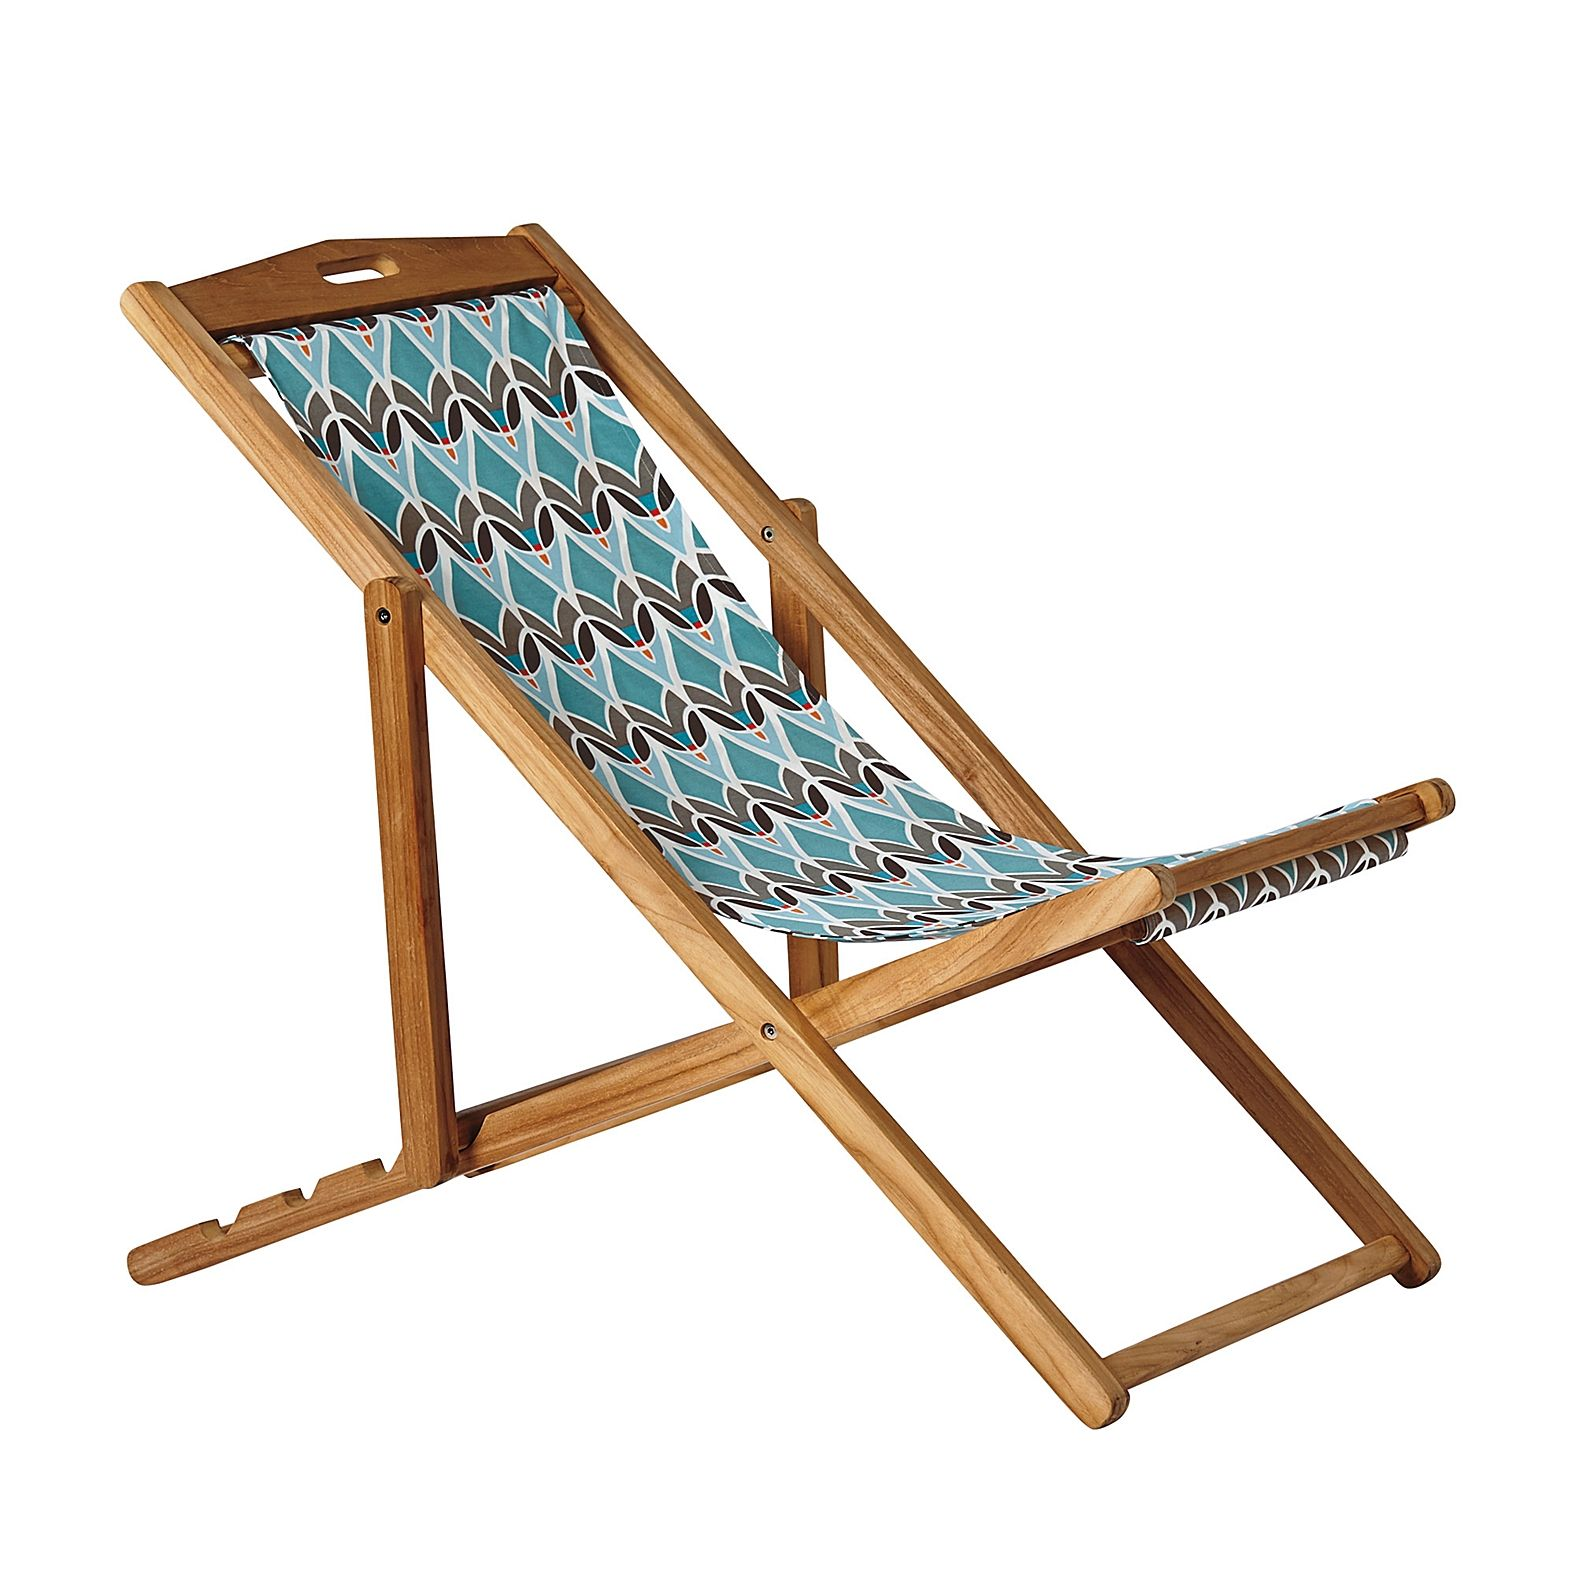 Sling Chair – Turquoise Montauk Serena & Lily